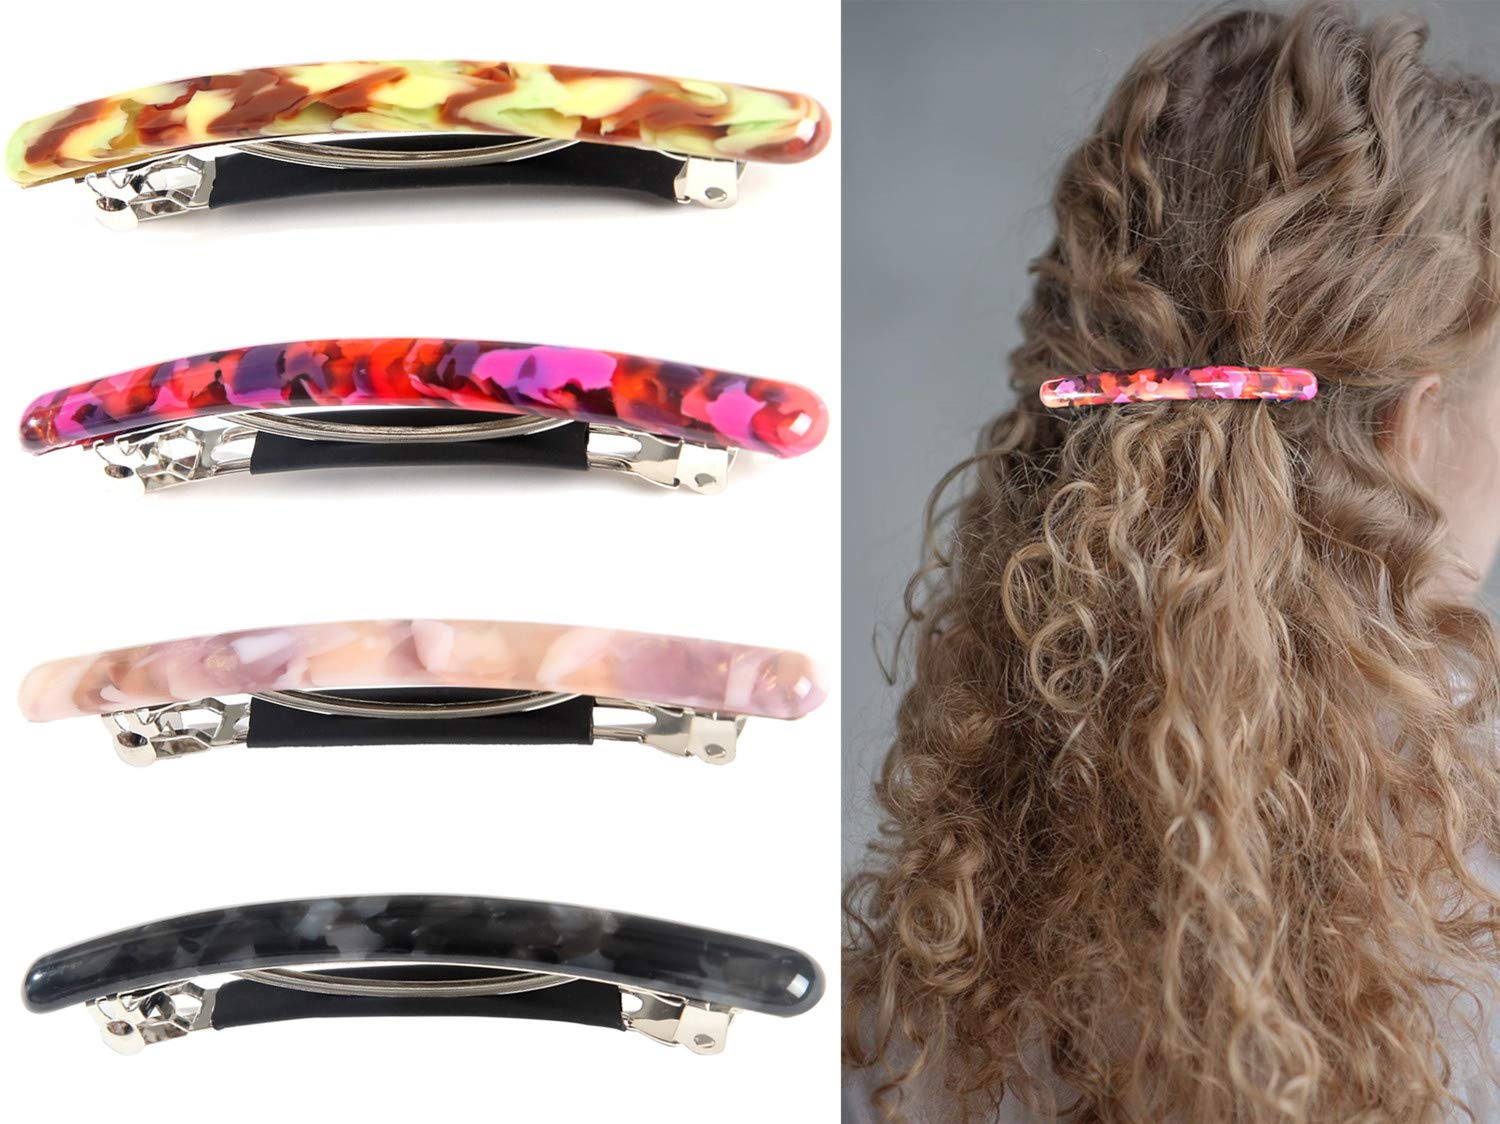 4 Pcs Skinny Hair Barrettes for Women, Colorful Small Barrette Clips for Thin Fine Hair, Celluloid Automatic French Hair Clips for Women Ladies : Beauty